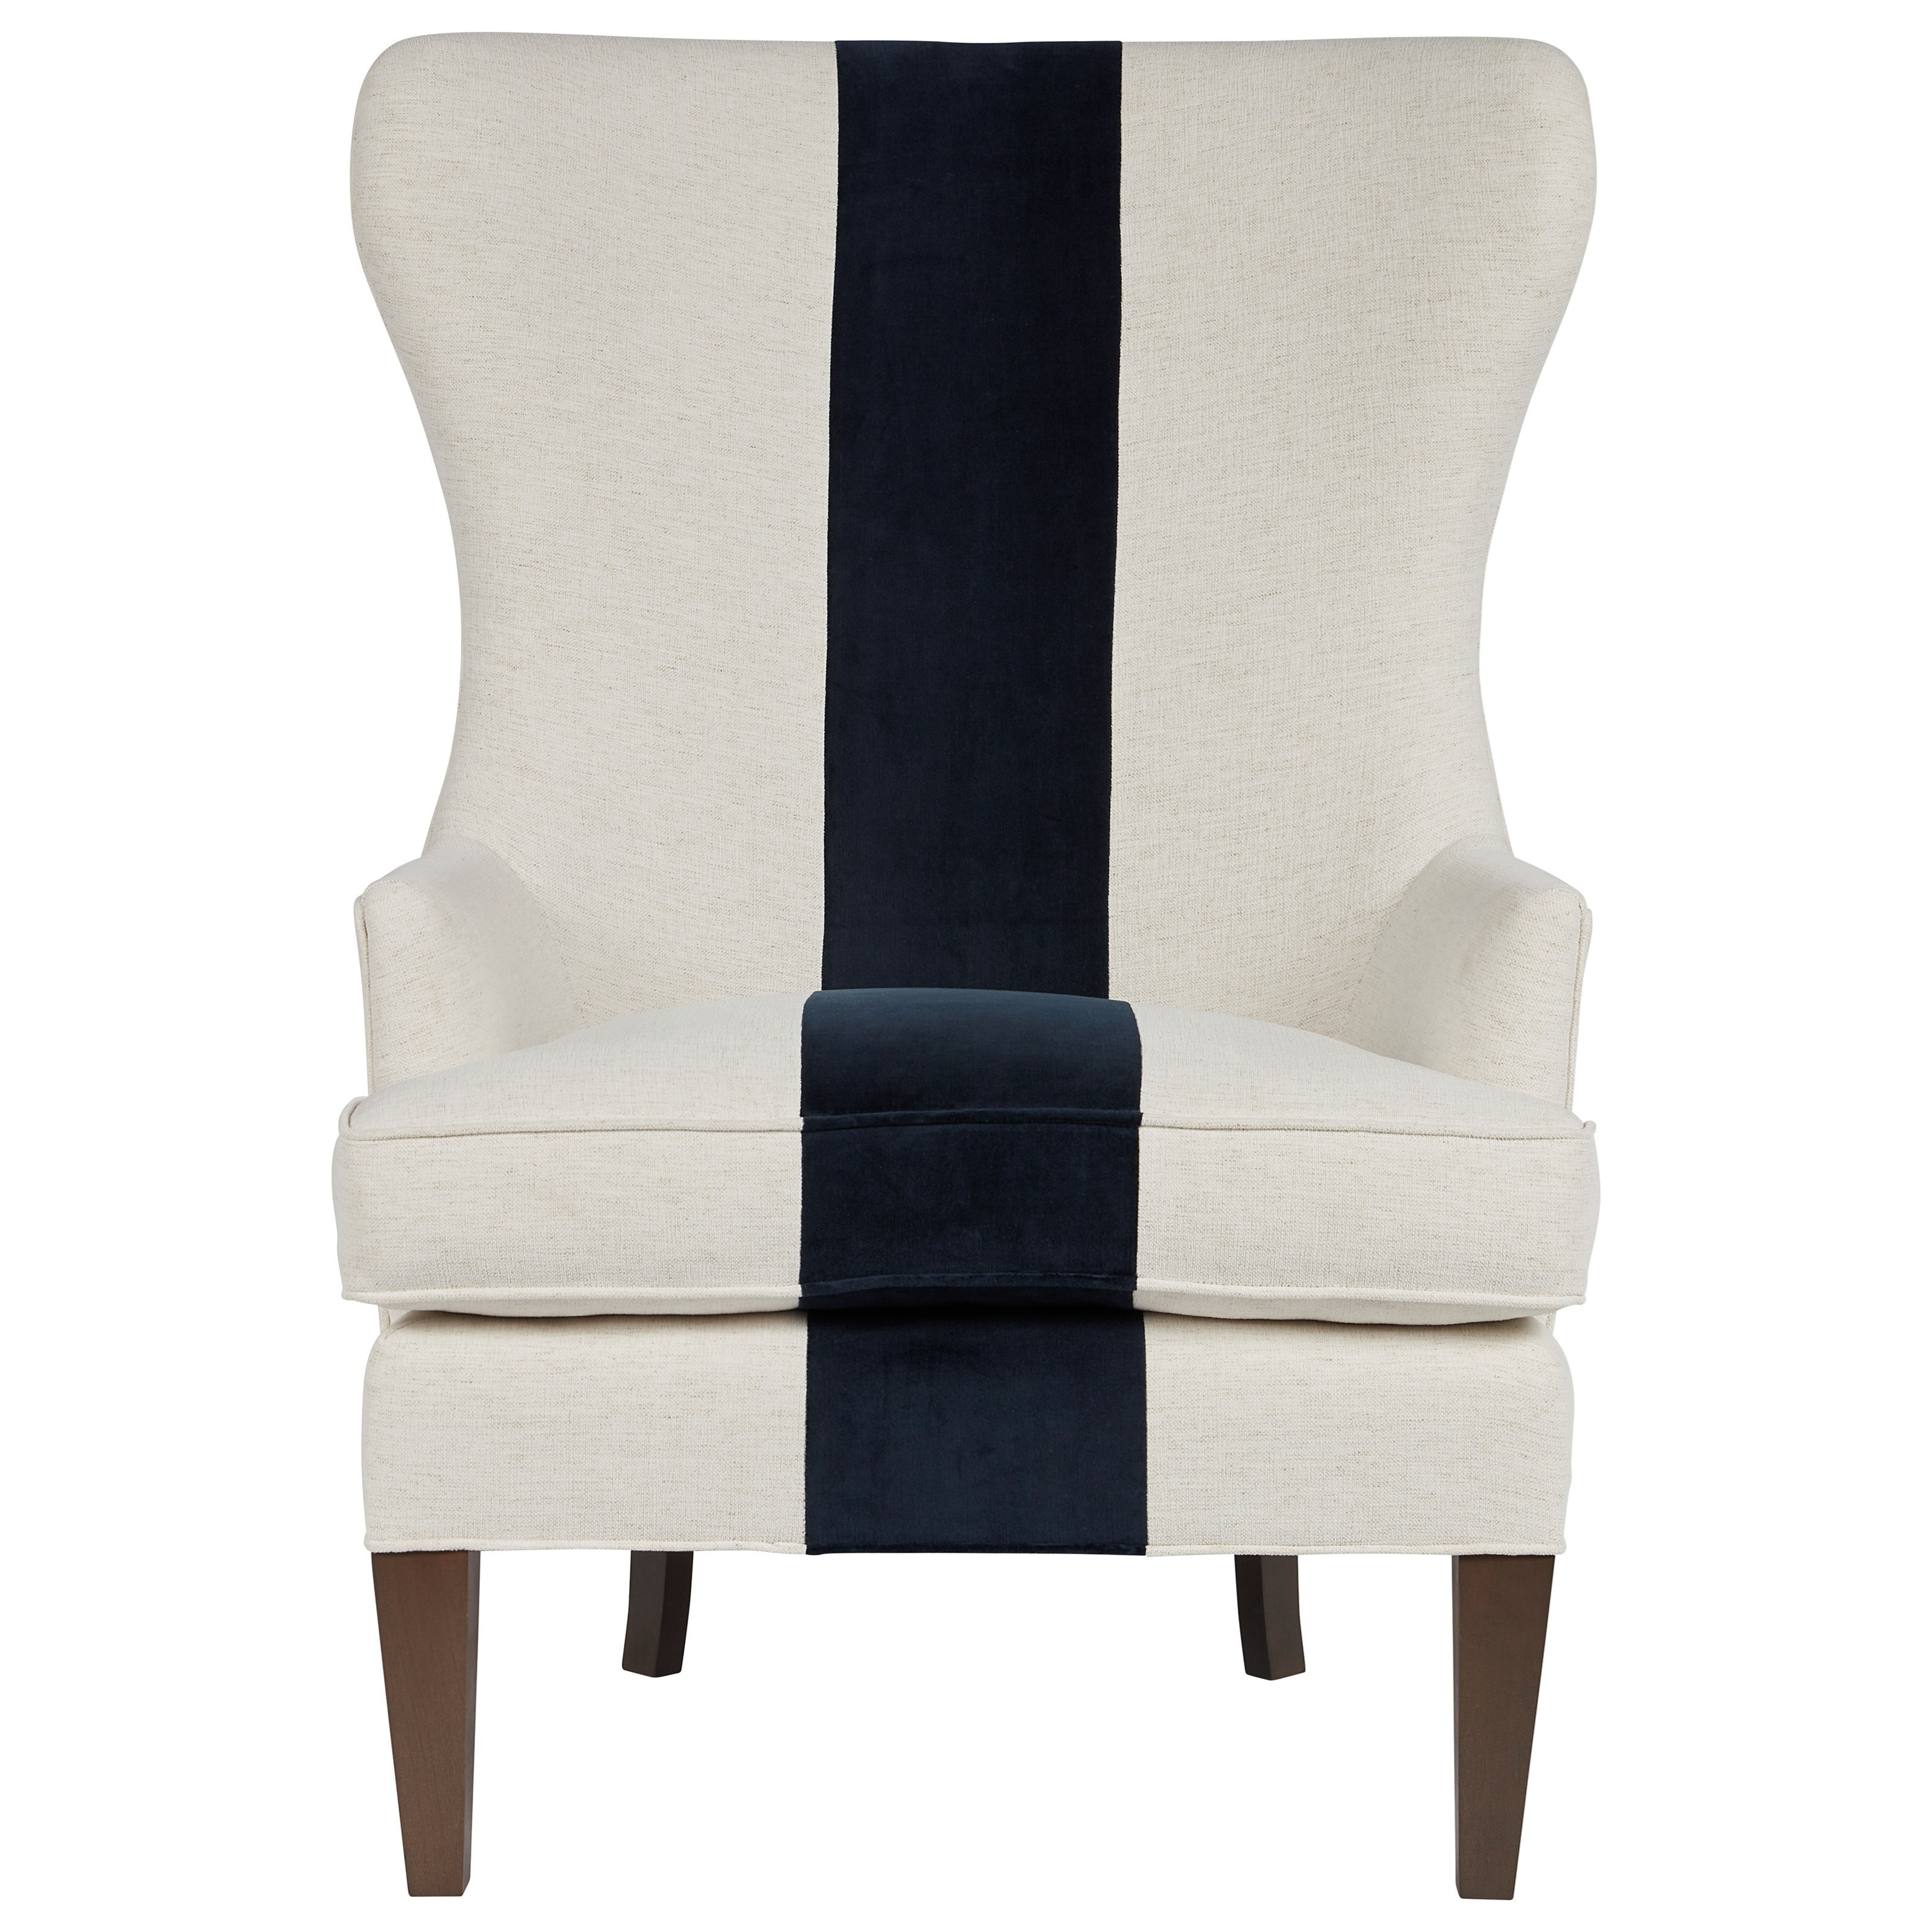 Coastal Living Home - Getaway Wing Chair  by Universal at Baer's Furniture